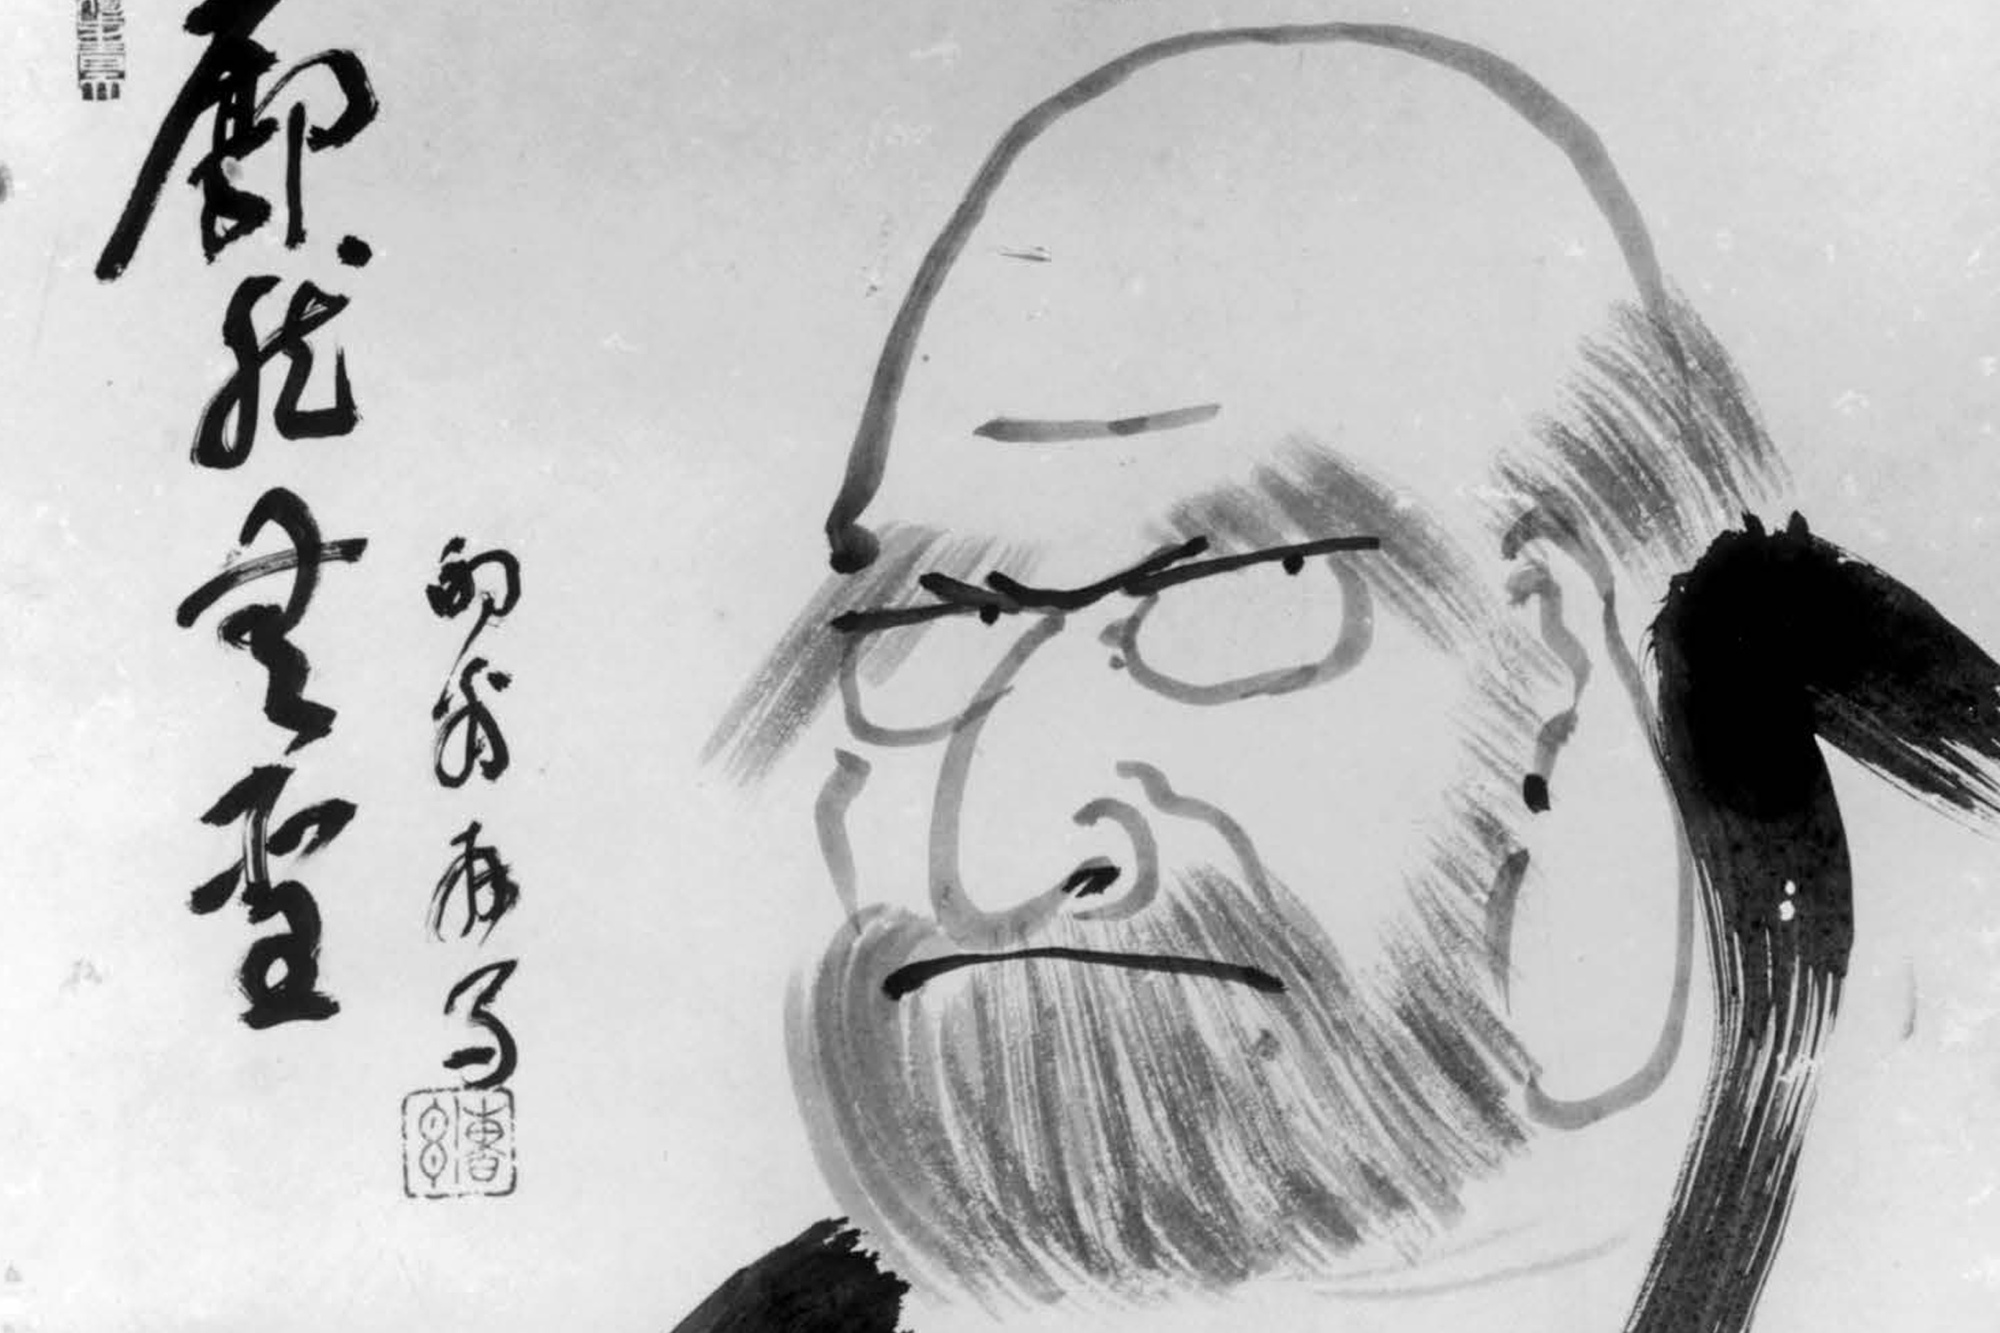 Ill-tempered: A painting of the Buddhist monk Bodhidharma by Sogen Omori. Bodhidharma is said to have bought Chan Buddhism to China, and trained the first Shaolin monks in China. | COURTESY OF TUTTLE PUBLISHING